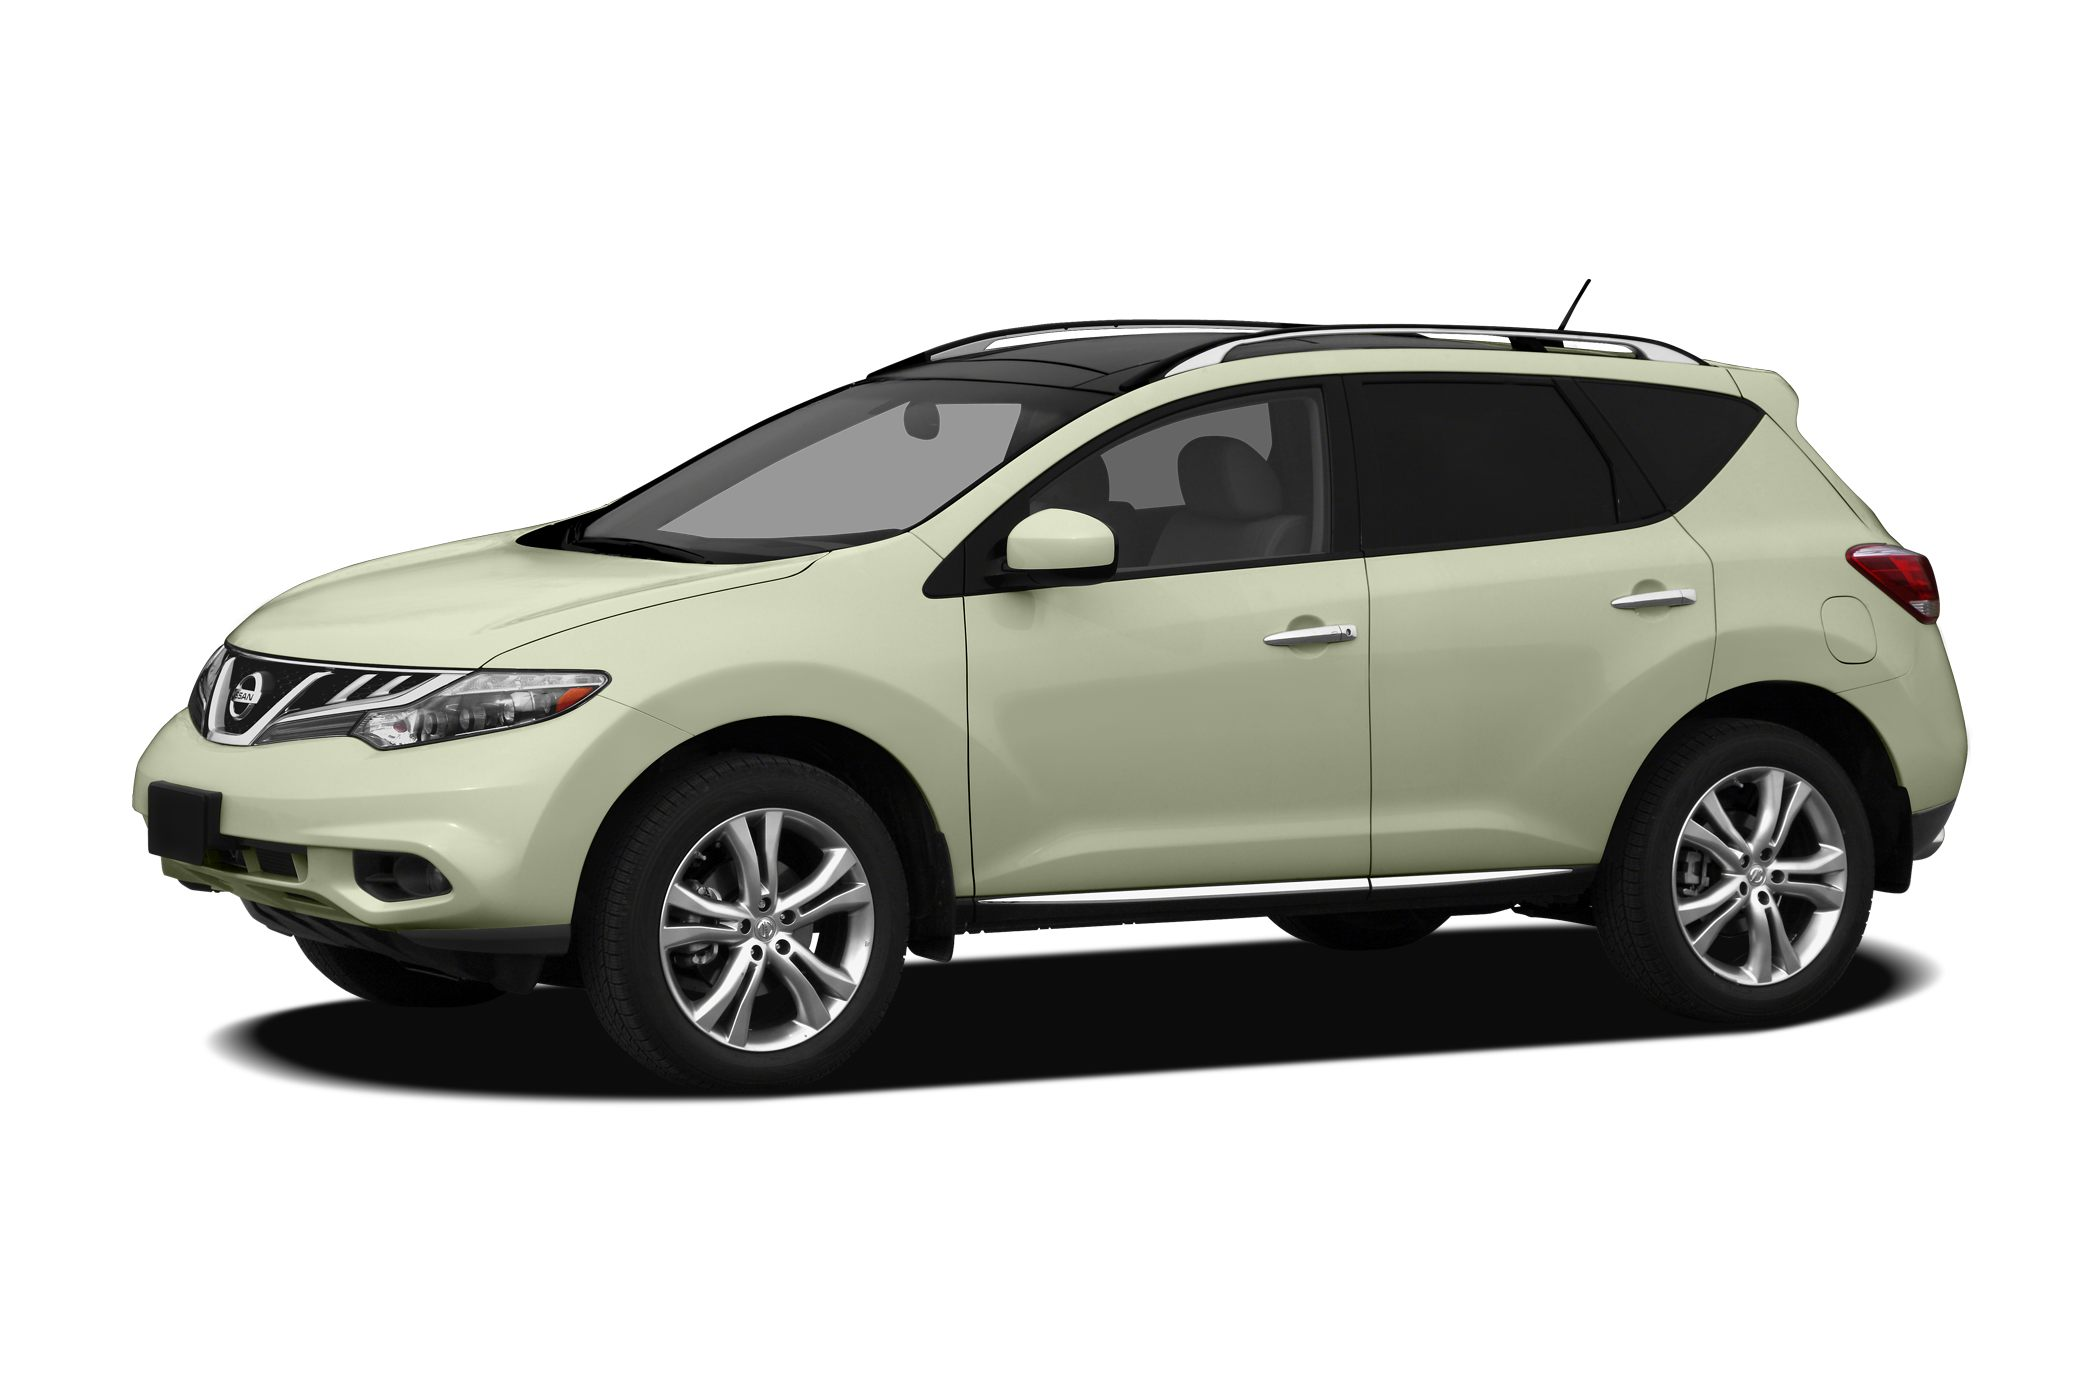 2011 Nissan Murano SL  WHEN IT COMES TO EXCELLENCE IN USED CAR SALES YOU KNOW YOURE AT STAR A